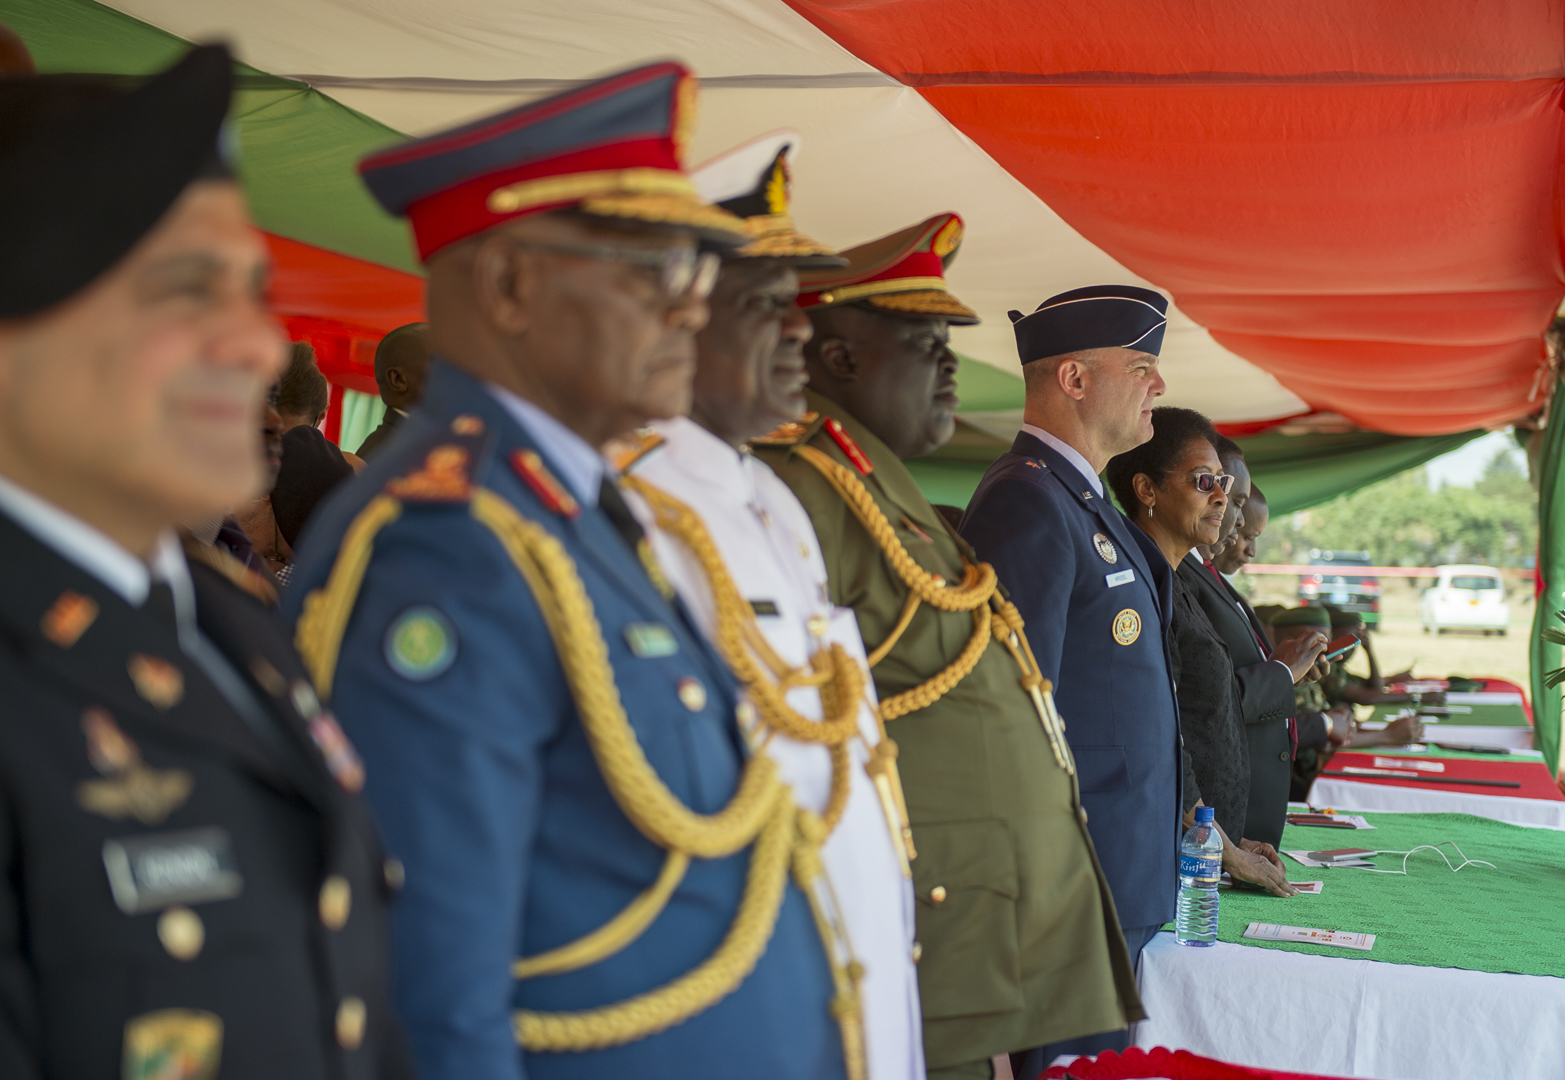 U.S. Air Force Brig. Gen. James R. Kriesel, deputy commanding general of Combined Joint Task Force-Horn of Africa, stands at attention as the graduating class of the Burundi National Defence Force Senior Command and Staff College enters in Bujumbura, Burundi, July 19, 2019. The class consisted of 28 students from four countries in the East African Community countries. (U.S. Air Force Photo by Senior Airman Codie Trimble)